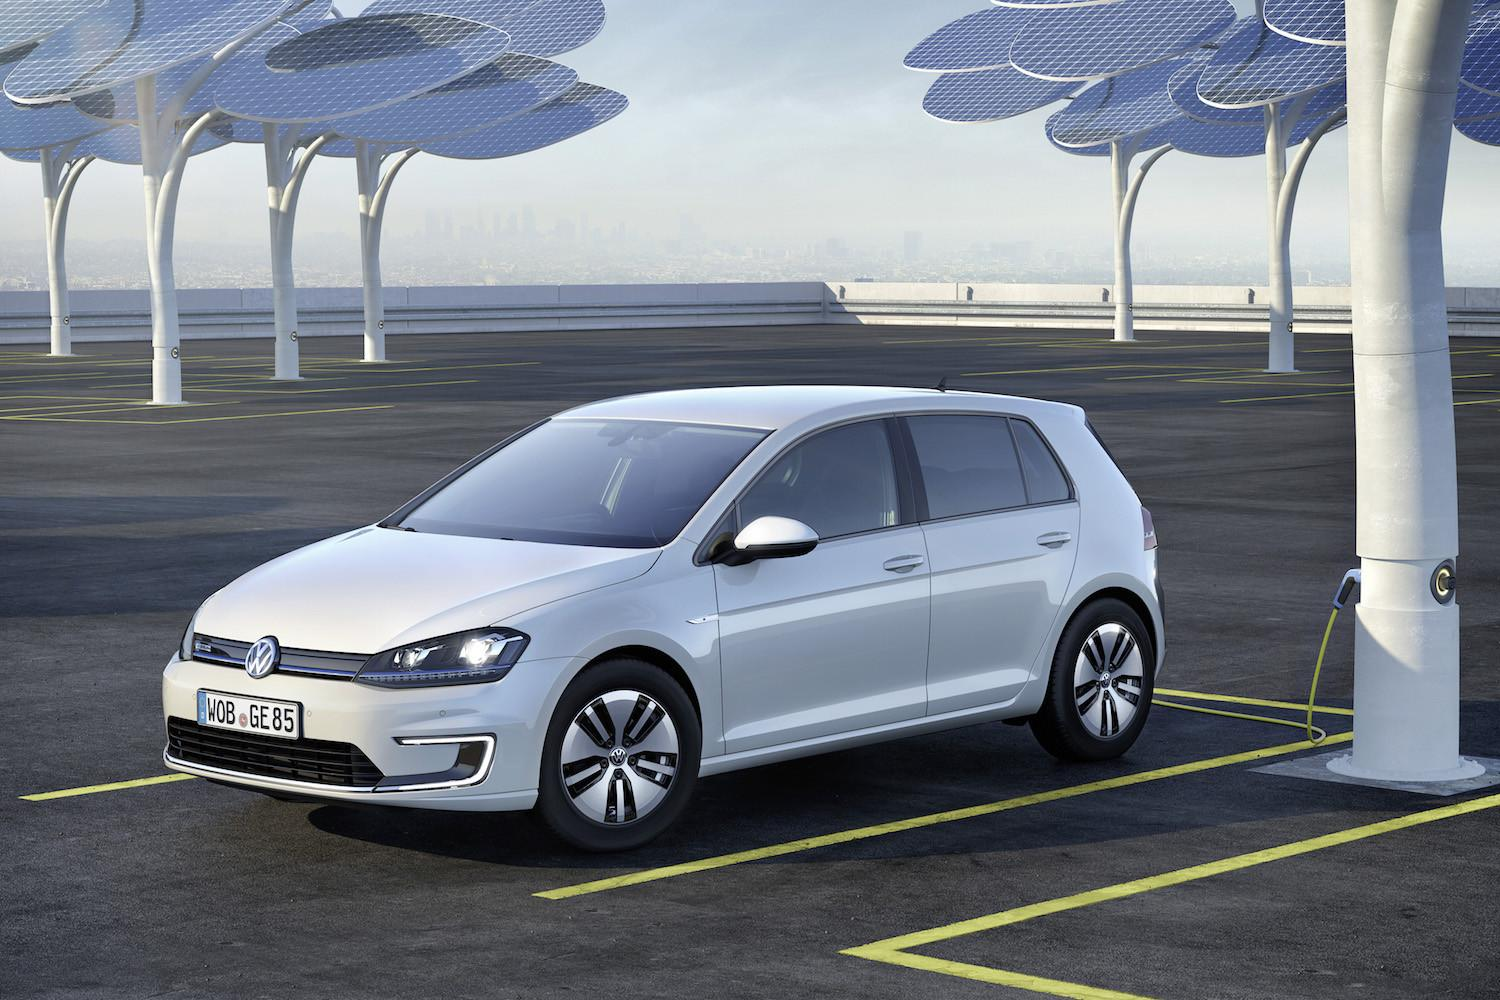 Did VW know fuel efficiency numbers were off a year ago?